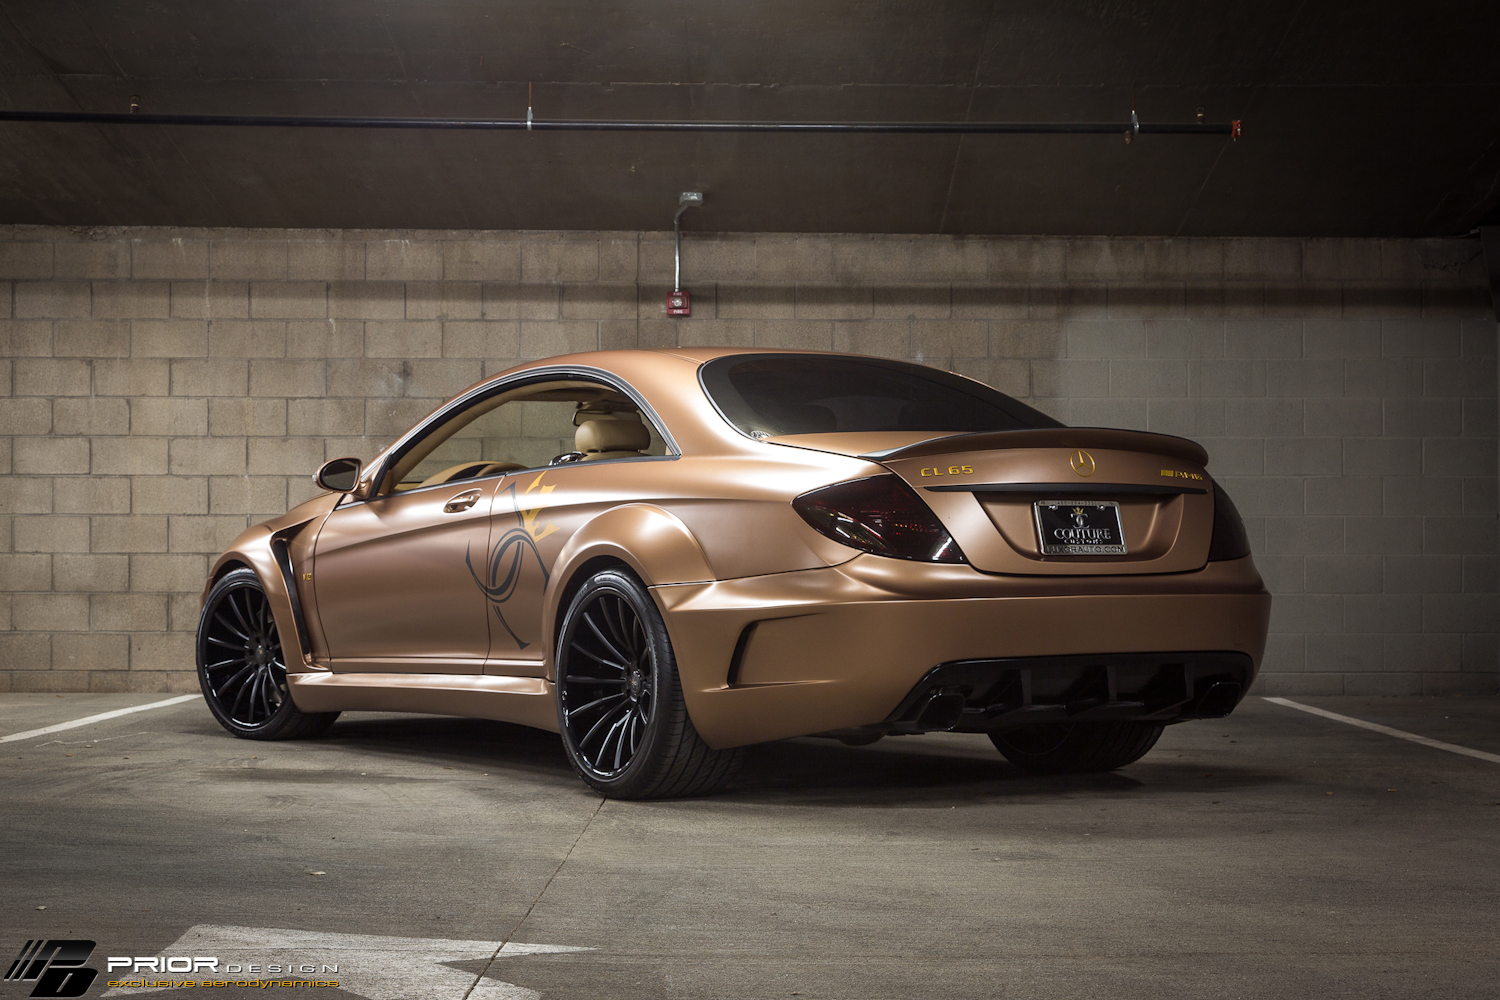 Mercedes benz cl65 amg prior design black edition widebody for Mercedes benz cl65 amg coupe